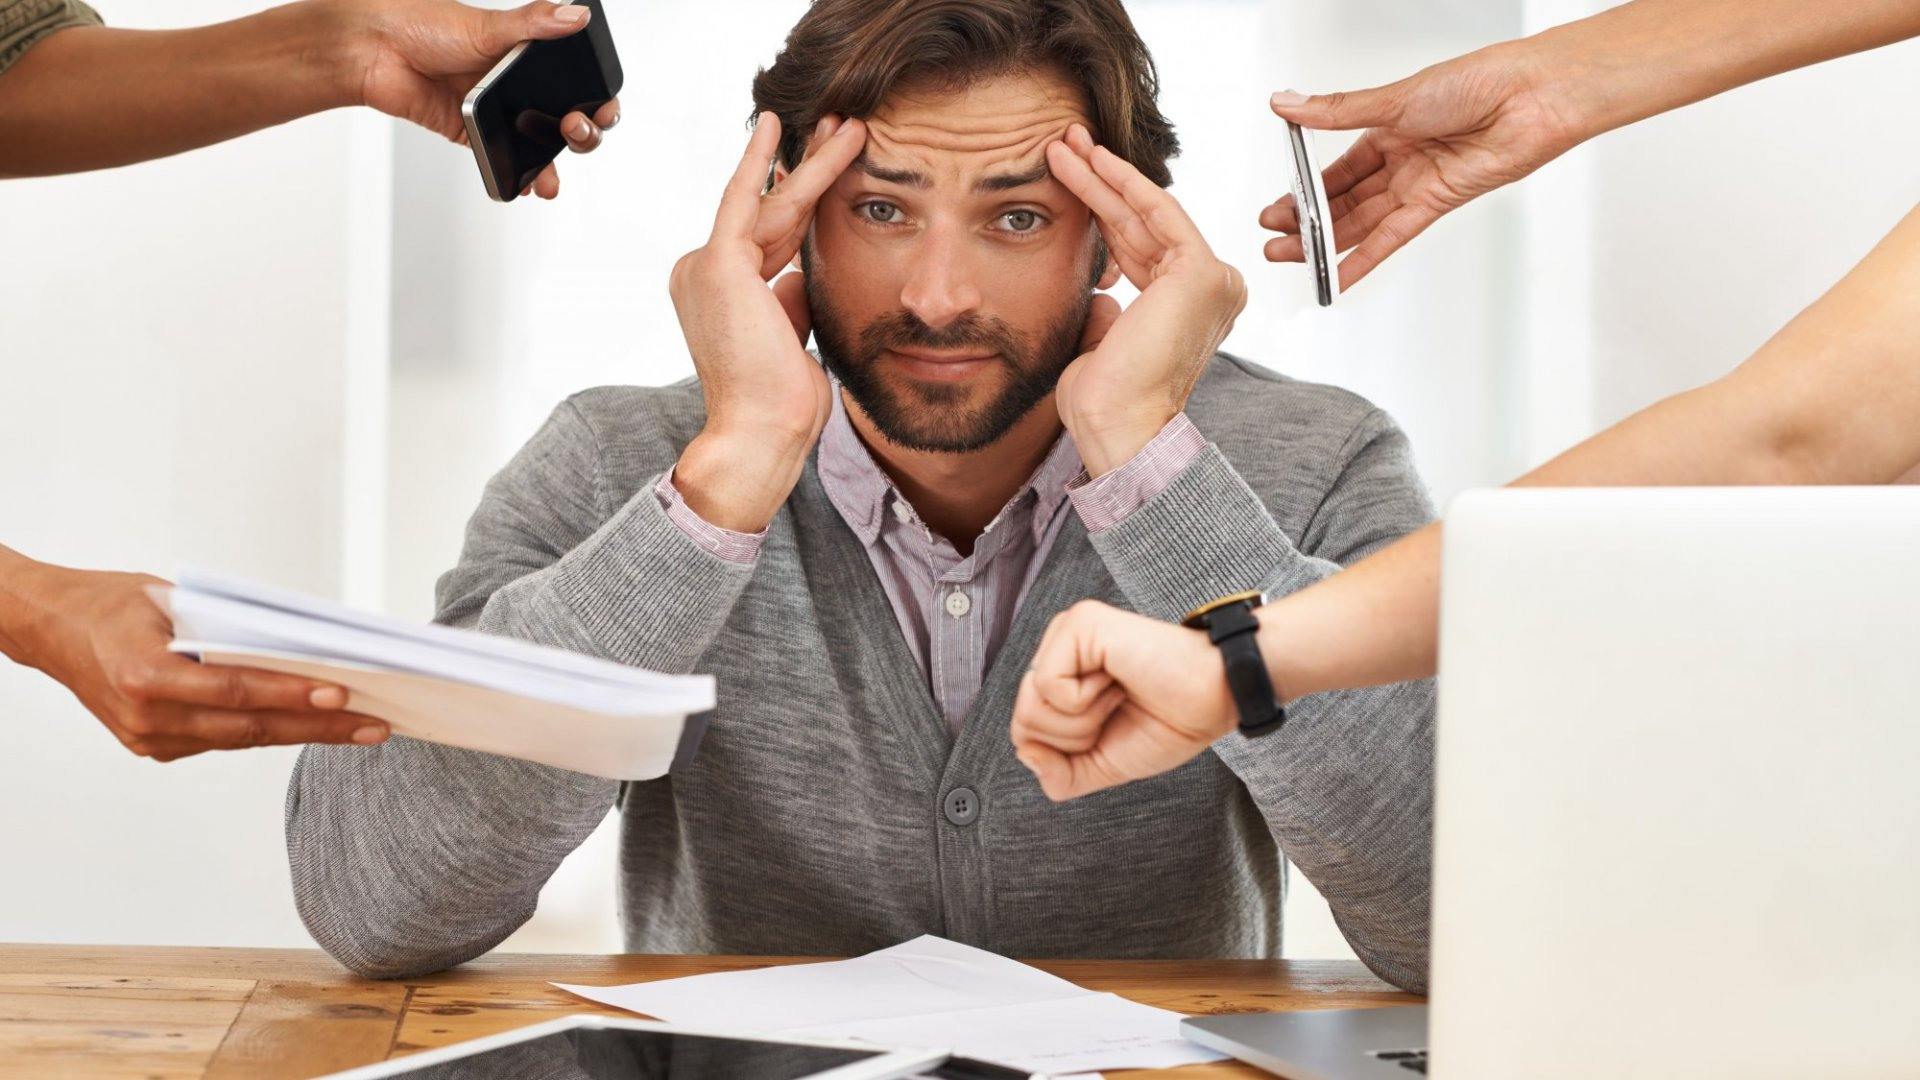 How to Deal With Stress in Sales